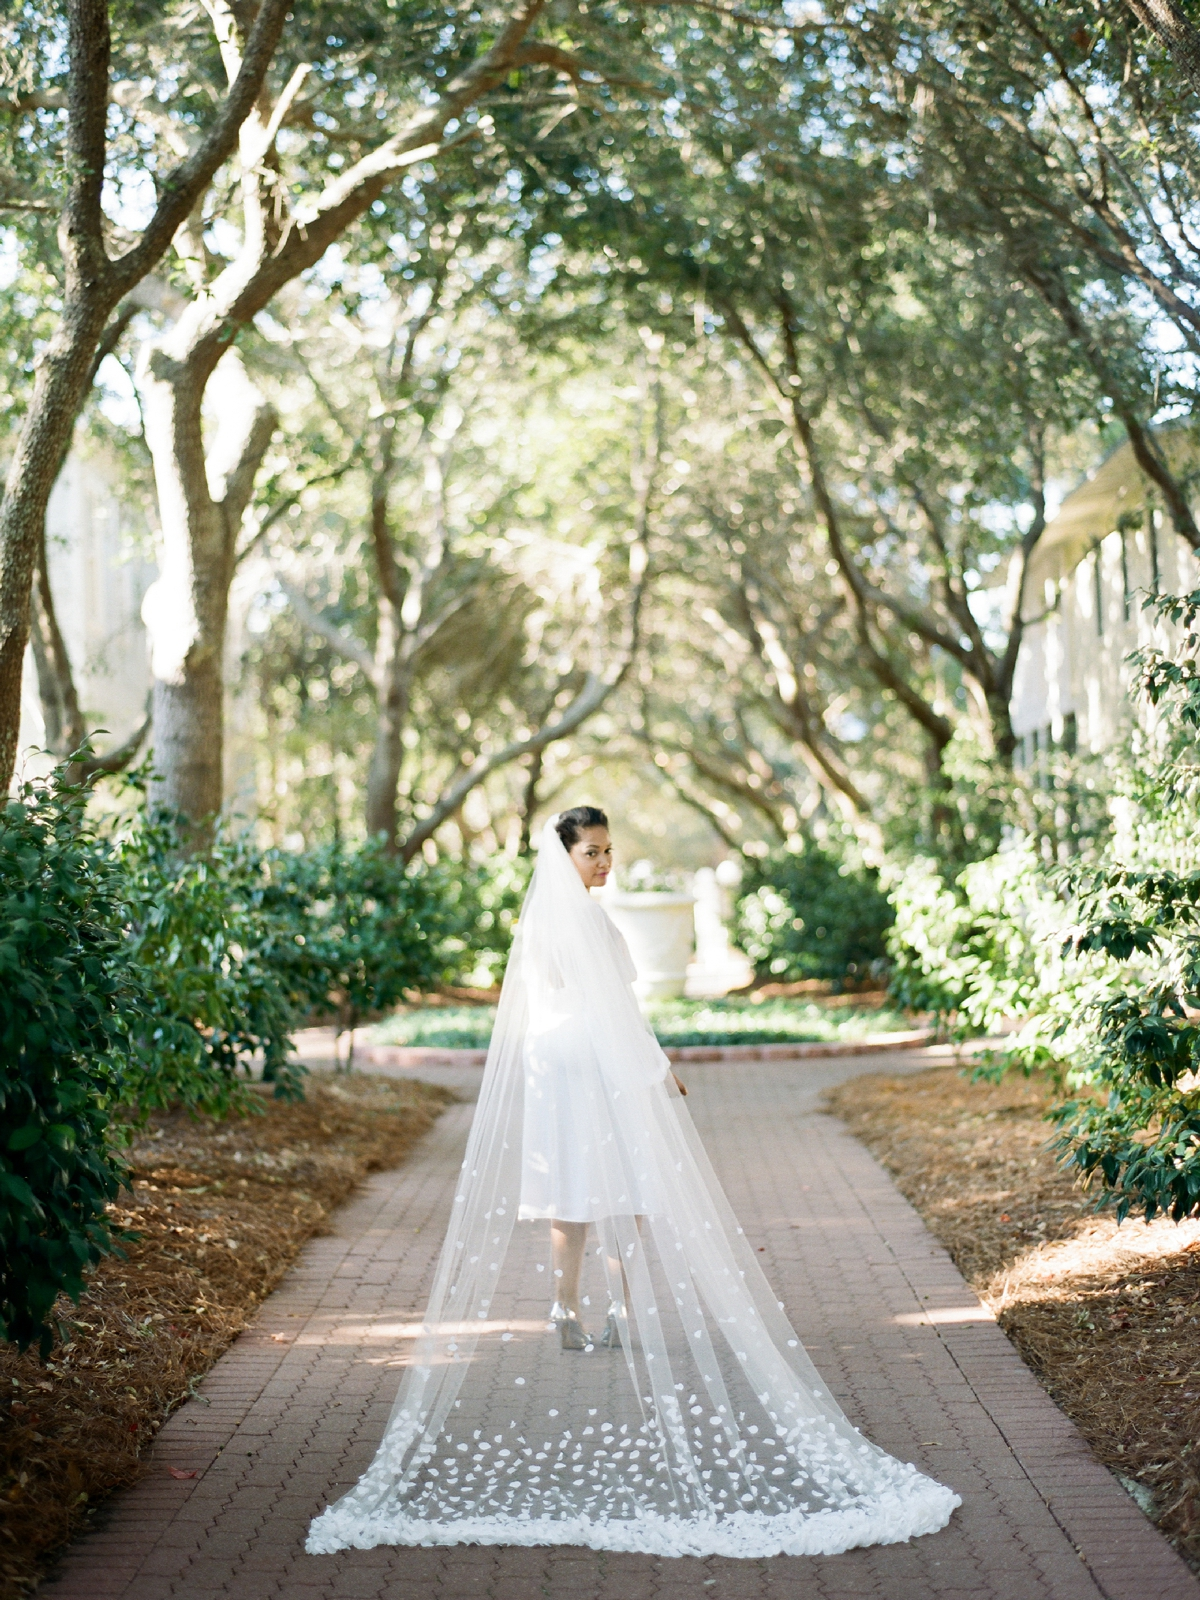 Floral Veil | West Palm Beach Wedding Photographer  Shannon Griffin_0046.jpg